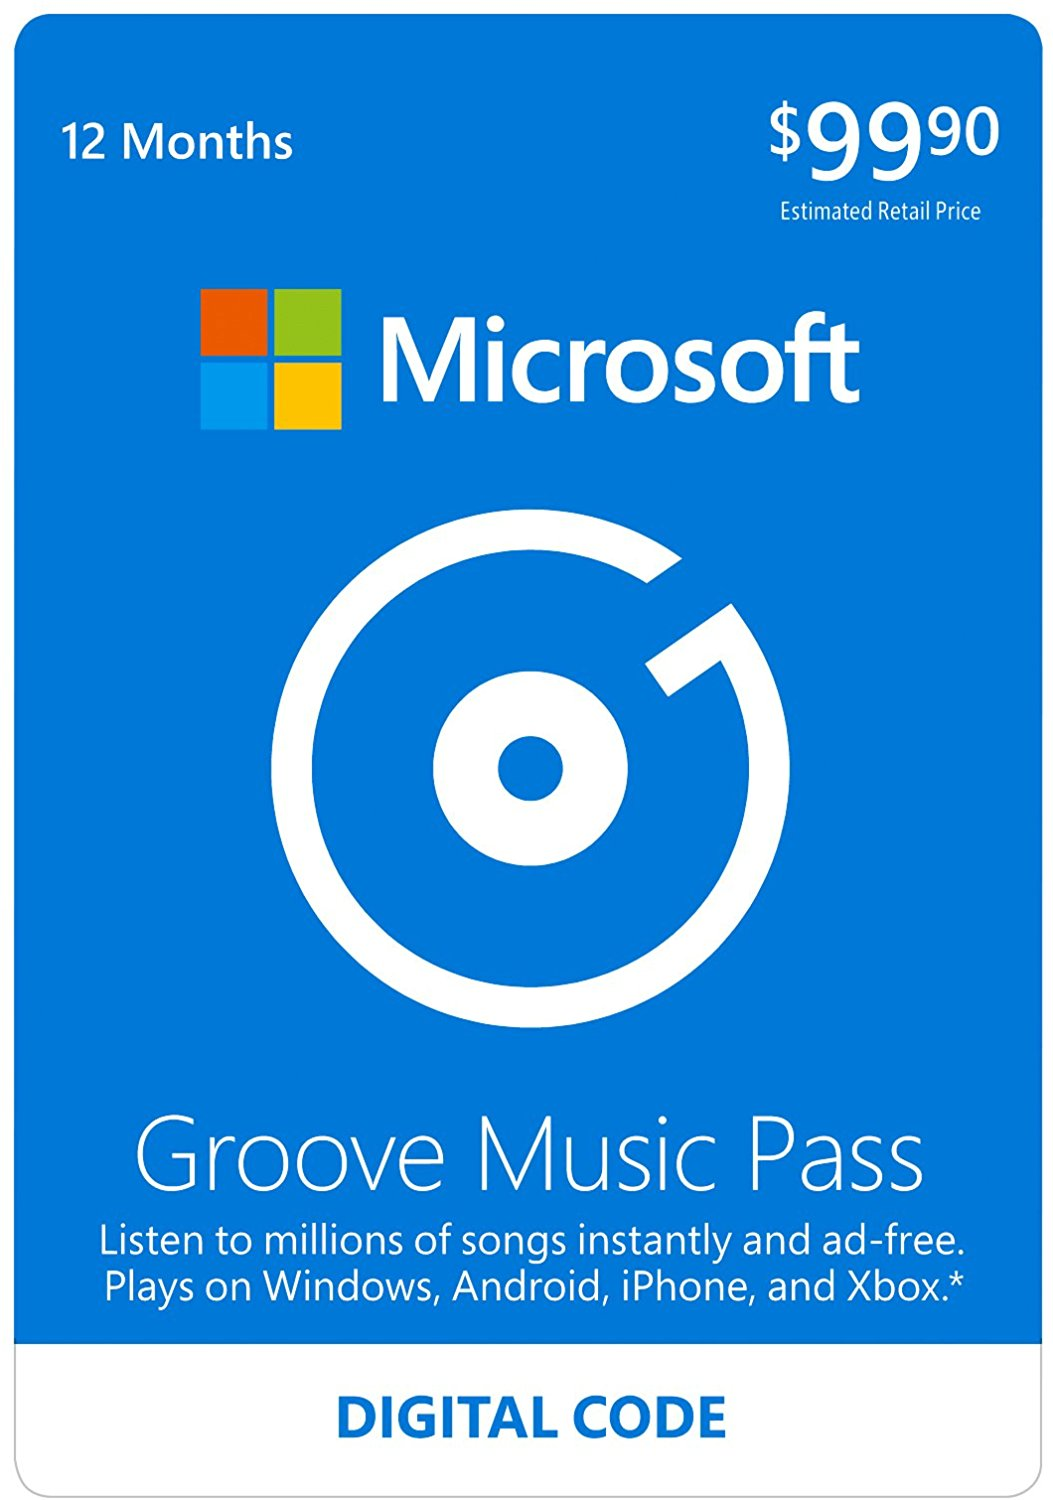 Microsoft To End Grove Music Pass On Windows December 31st